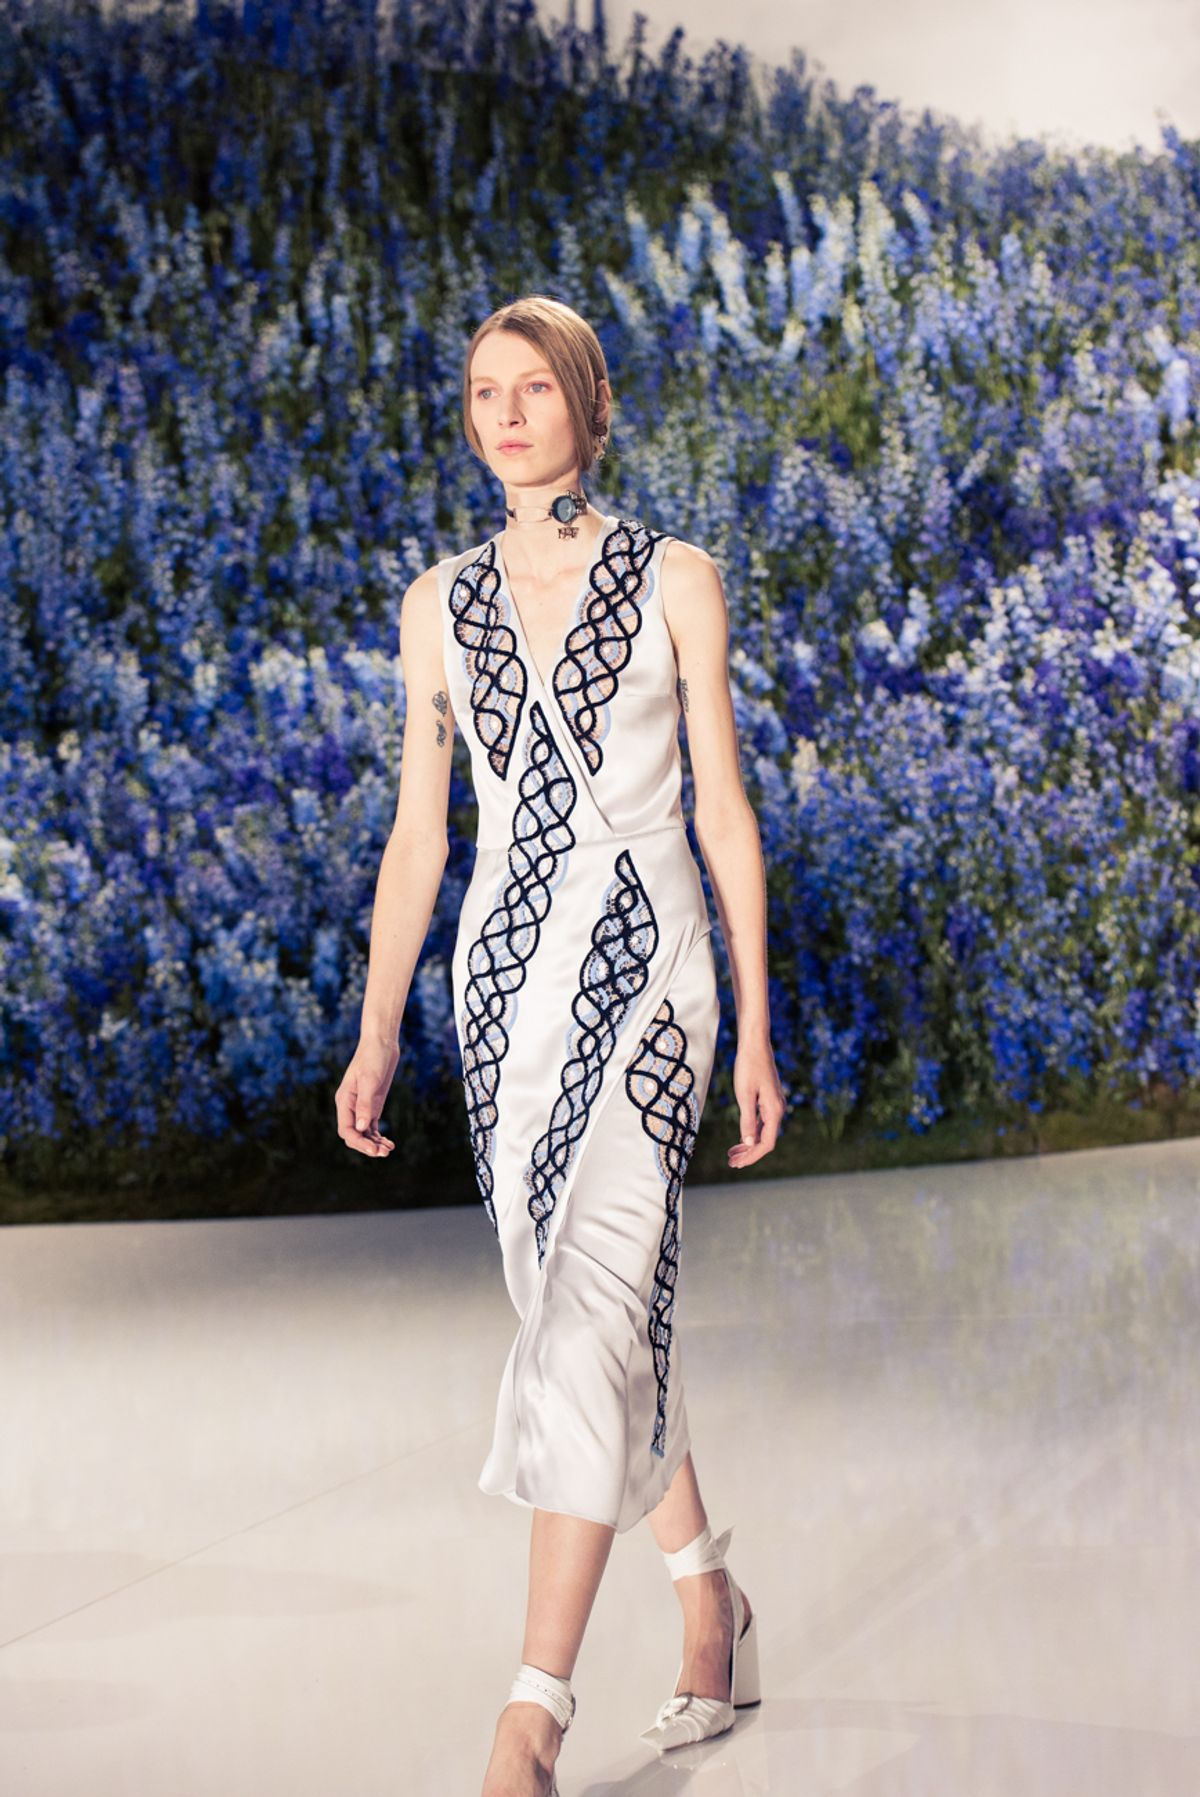 Inside the Dior Spring 2016 Runway Show